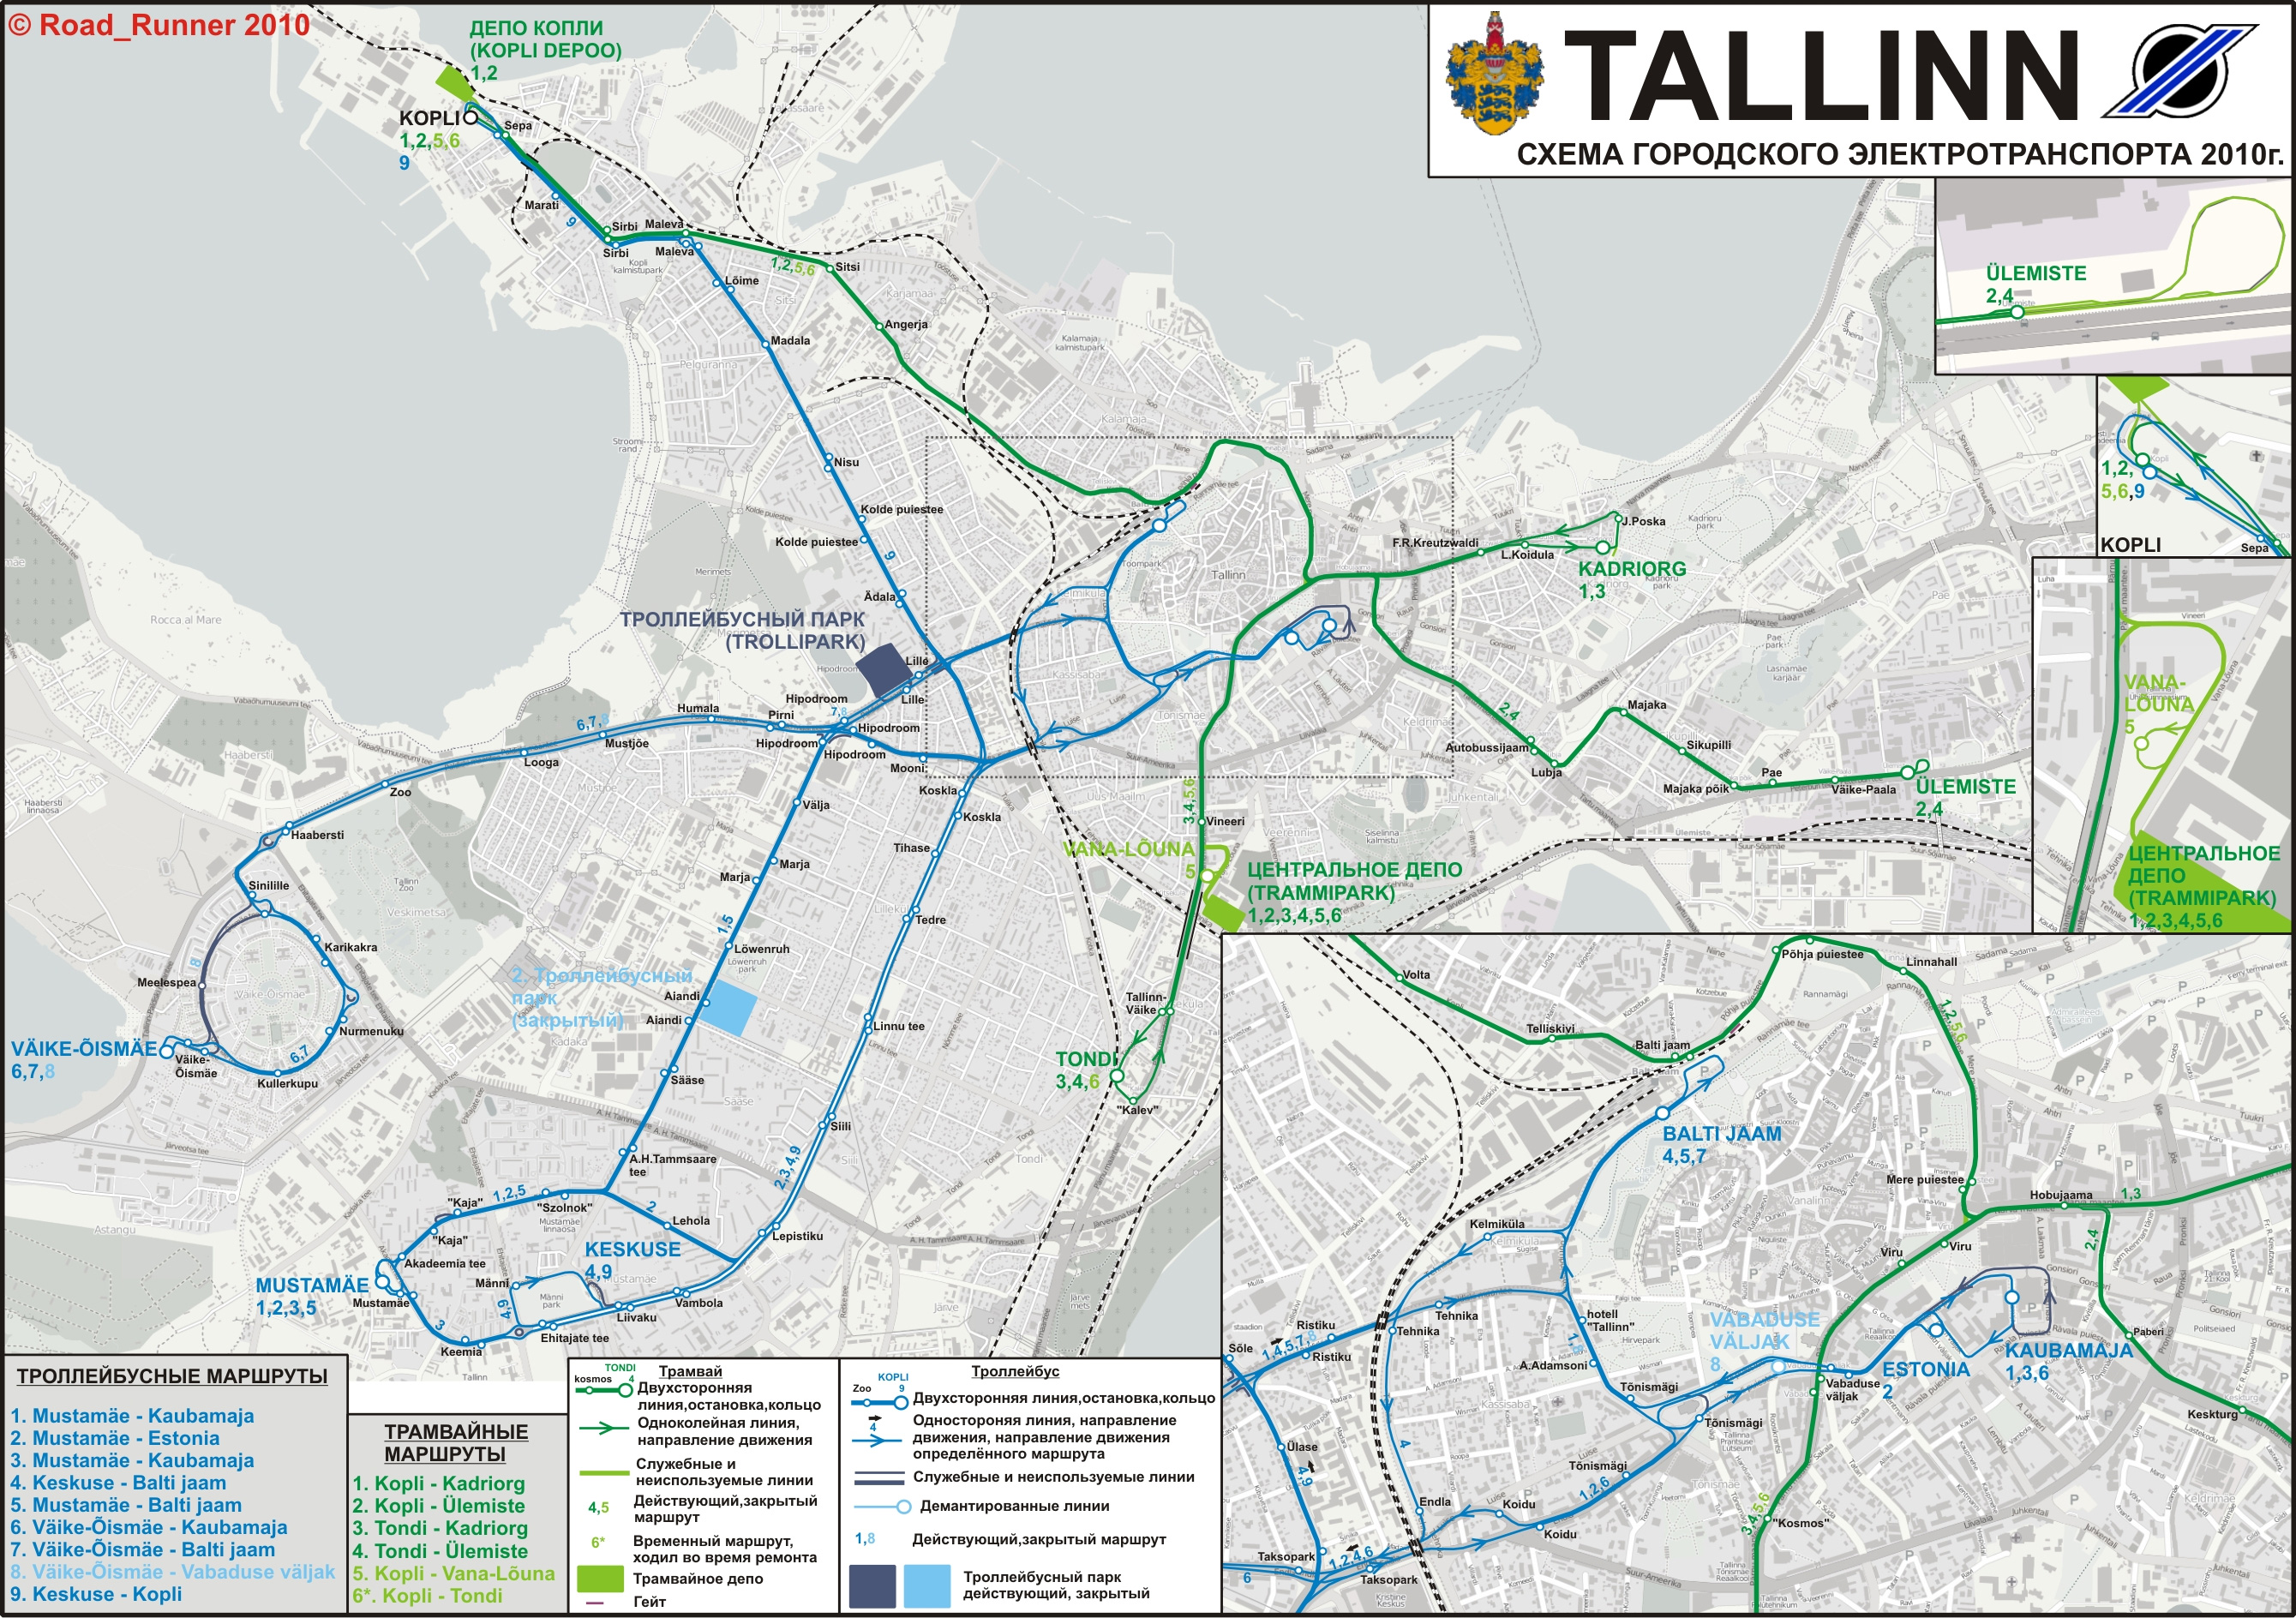 Tallinn Bus Map Hilversum Bus Map Gothenburg Bus Map Ottawa Bus - Tallinn map